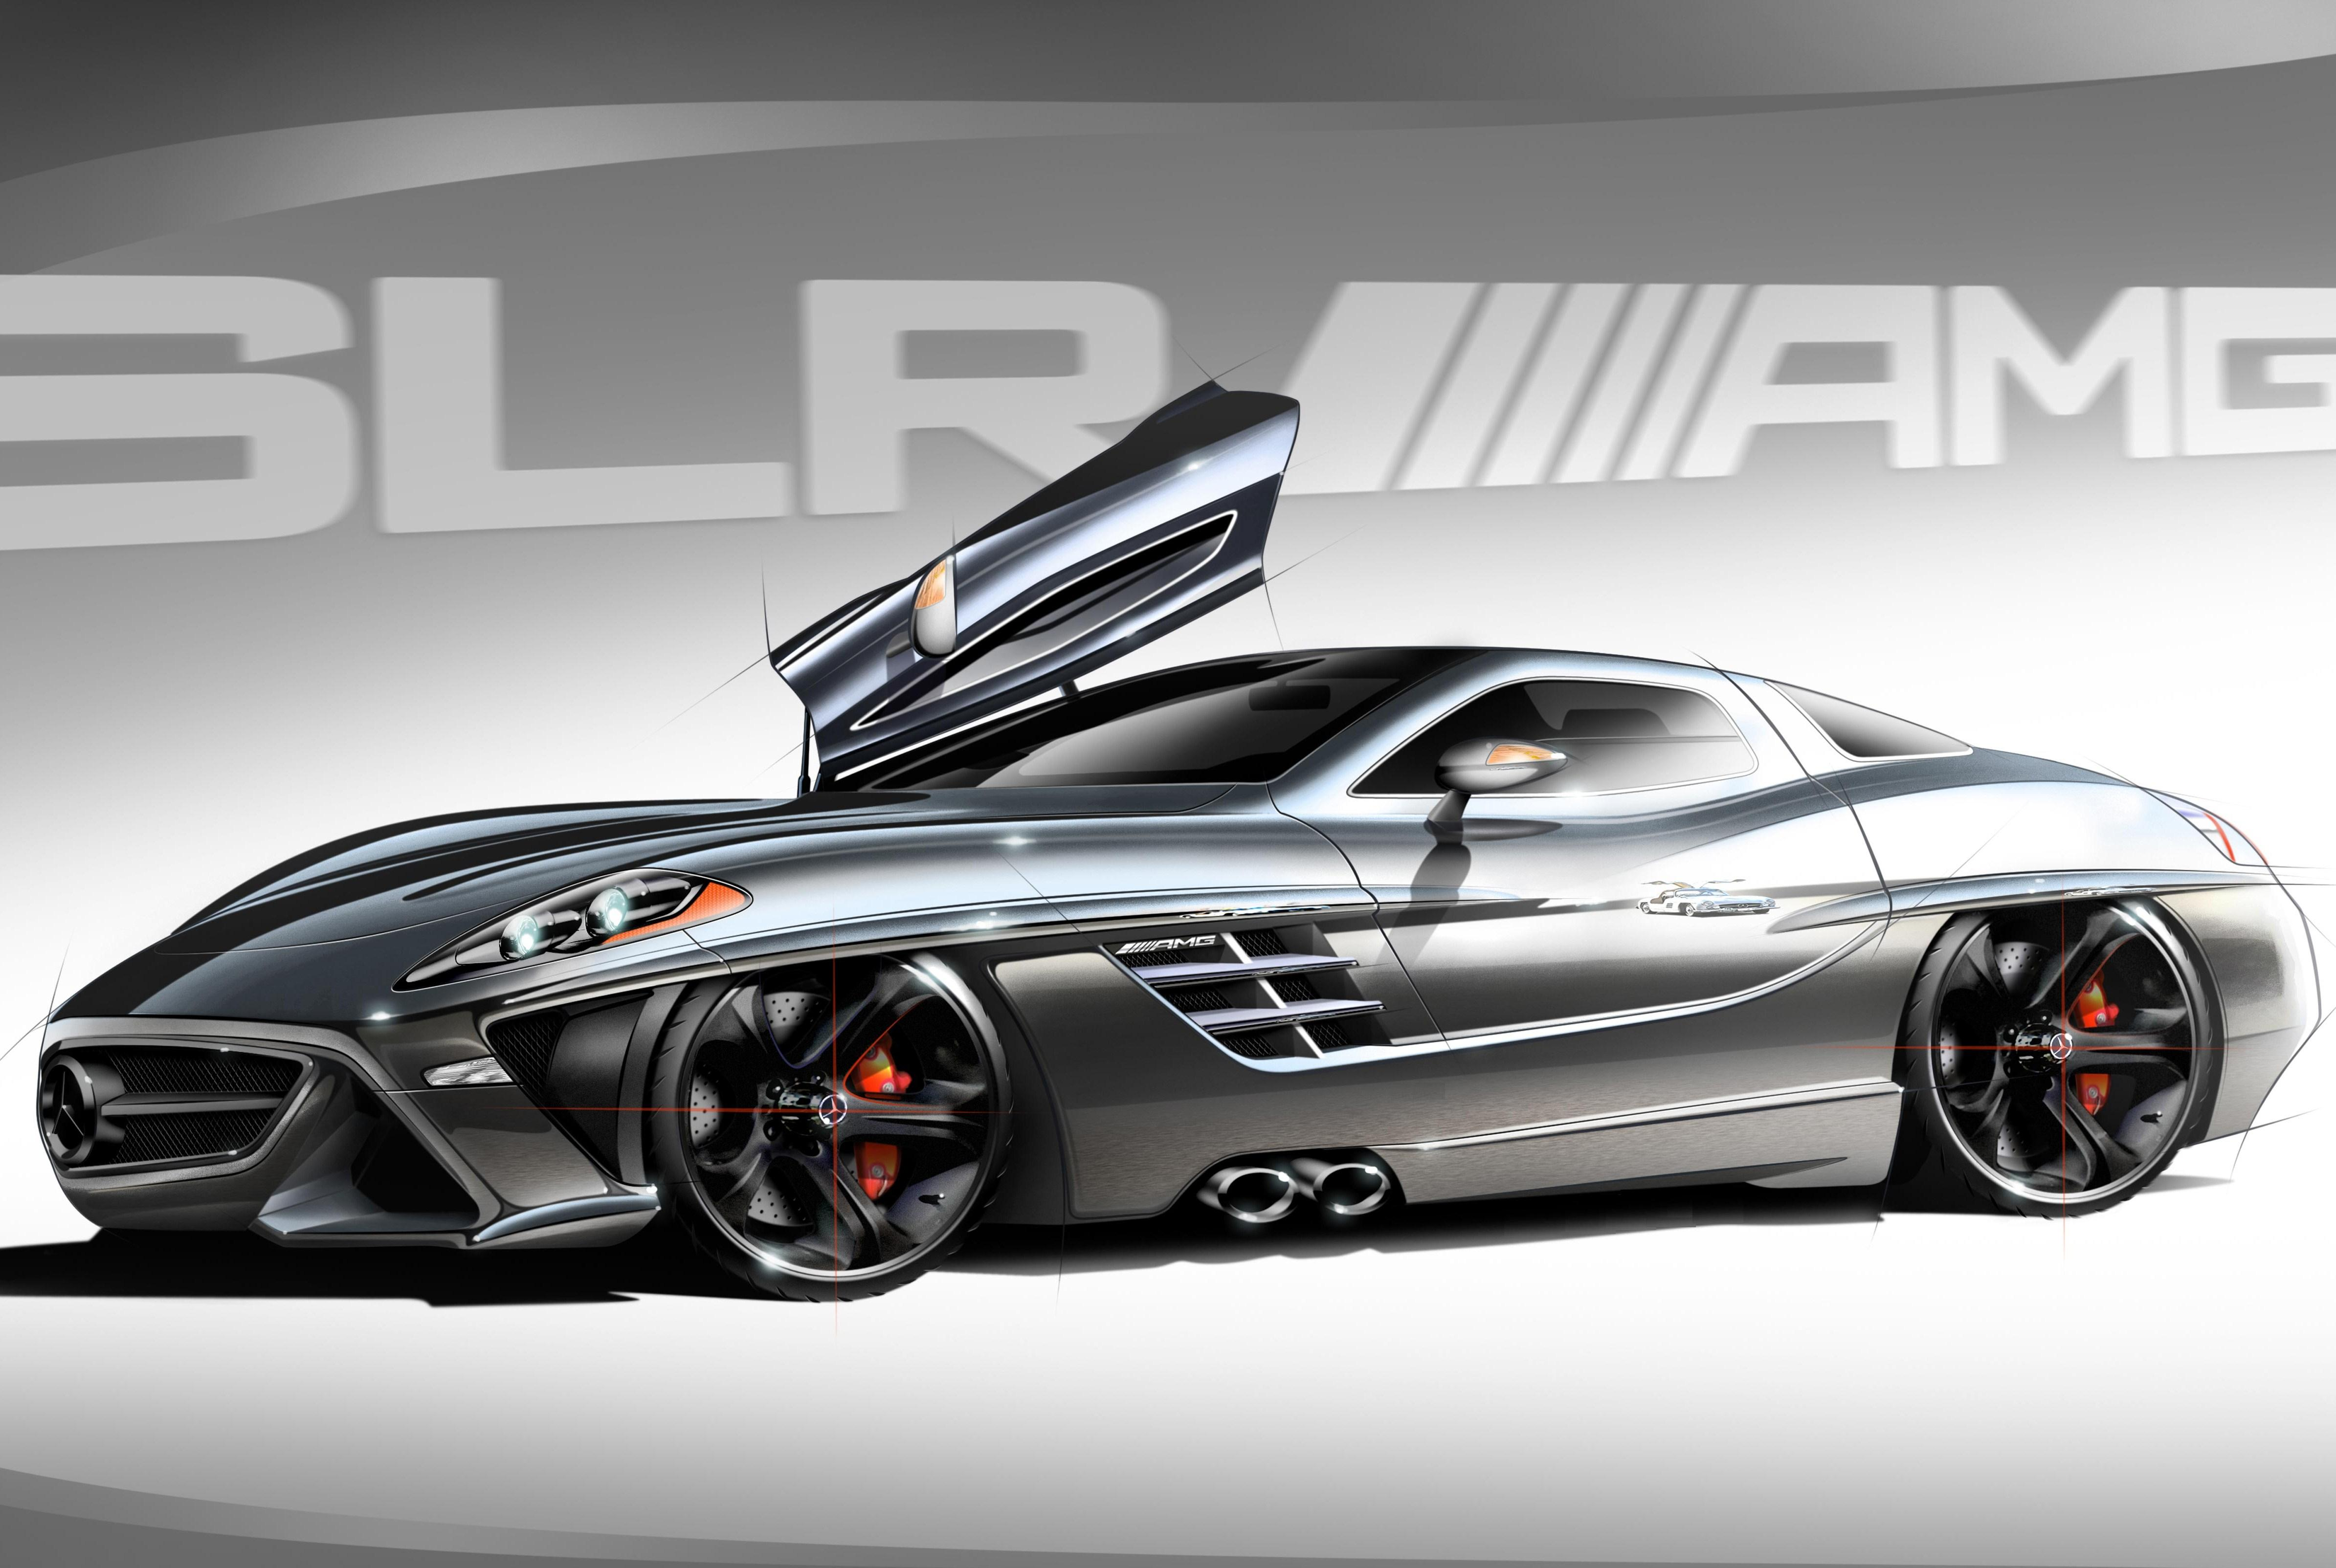 hd desktop wallpaper cars - www.